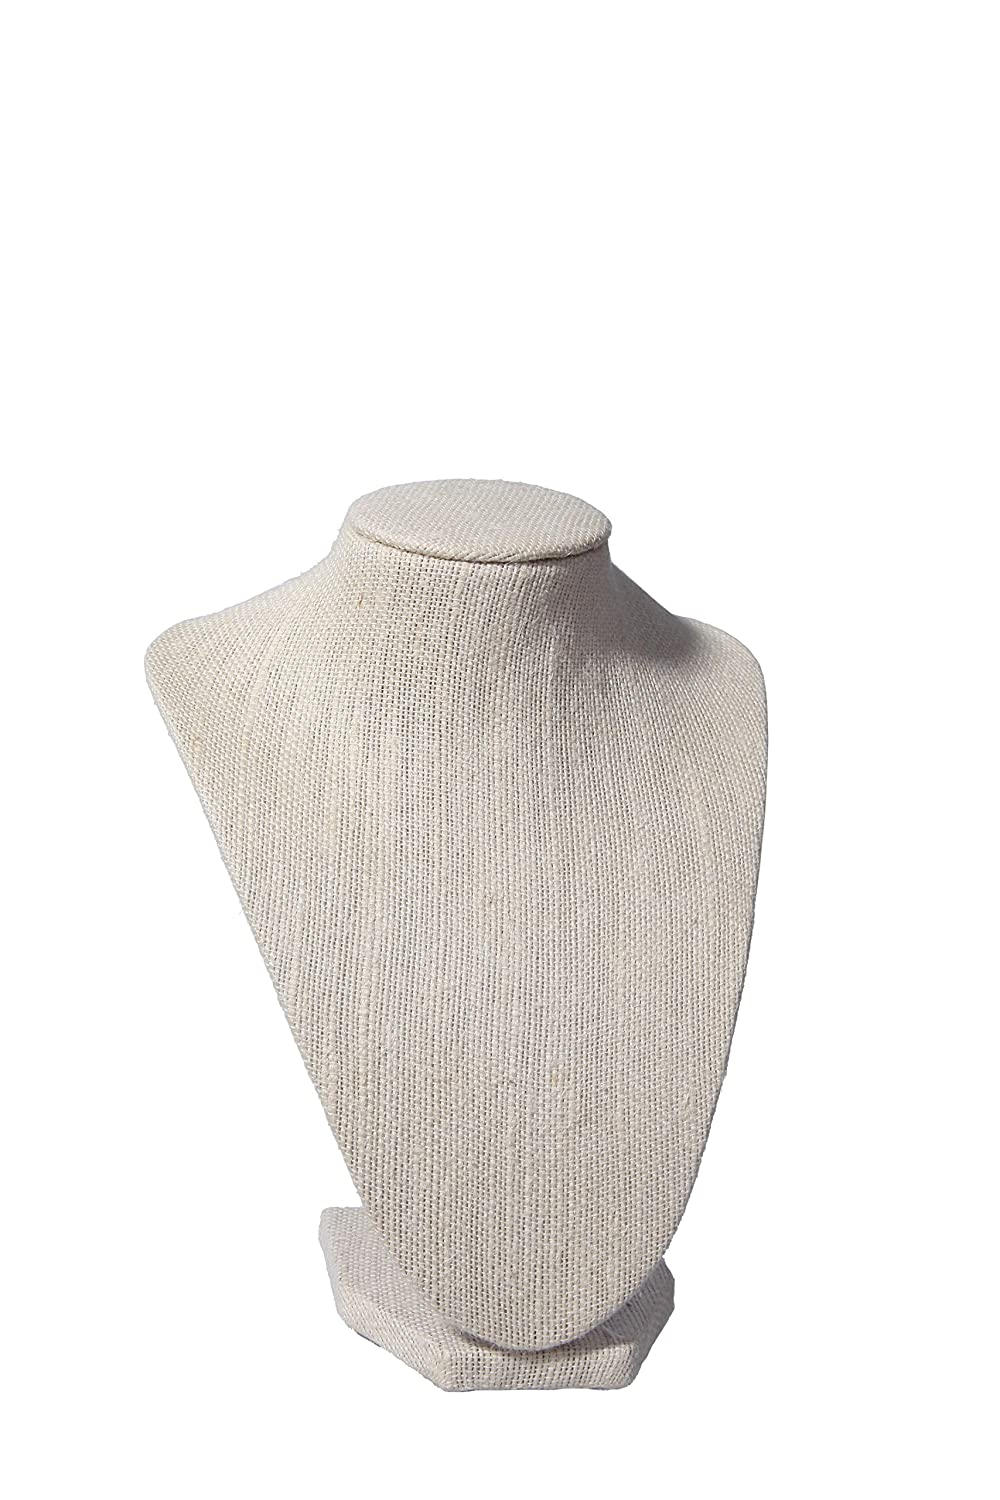 Juvale Female Fashion Jewelry Headless Mannequin Bust Display Arts & Crafts 7L X 8.5H inches Manikins